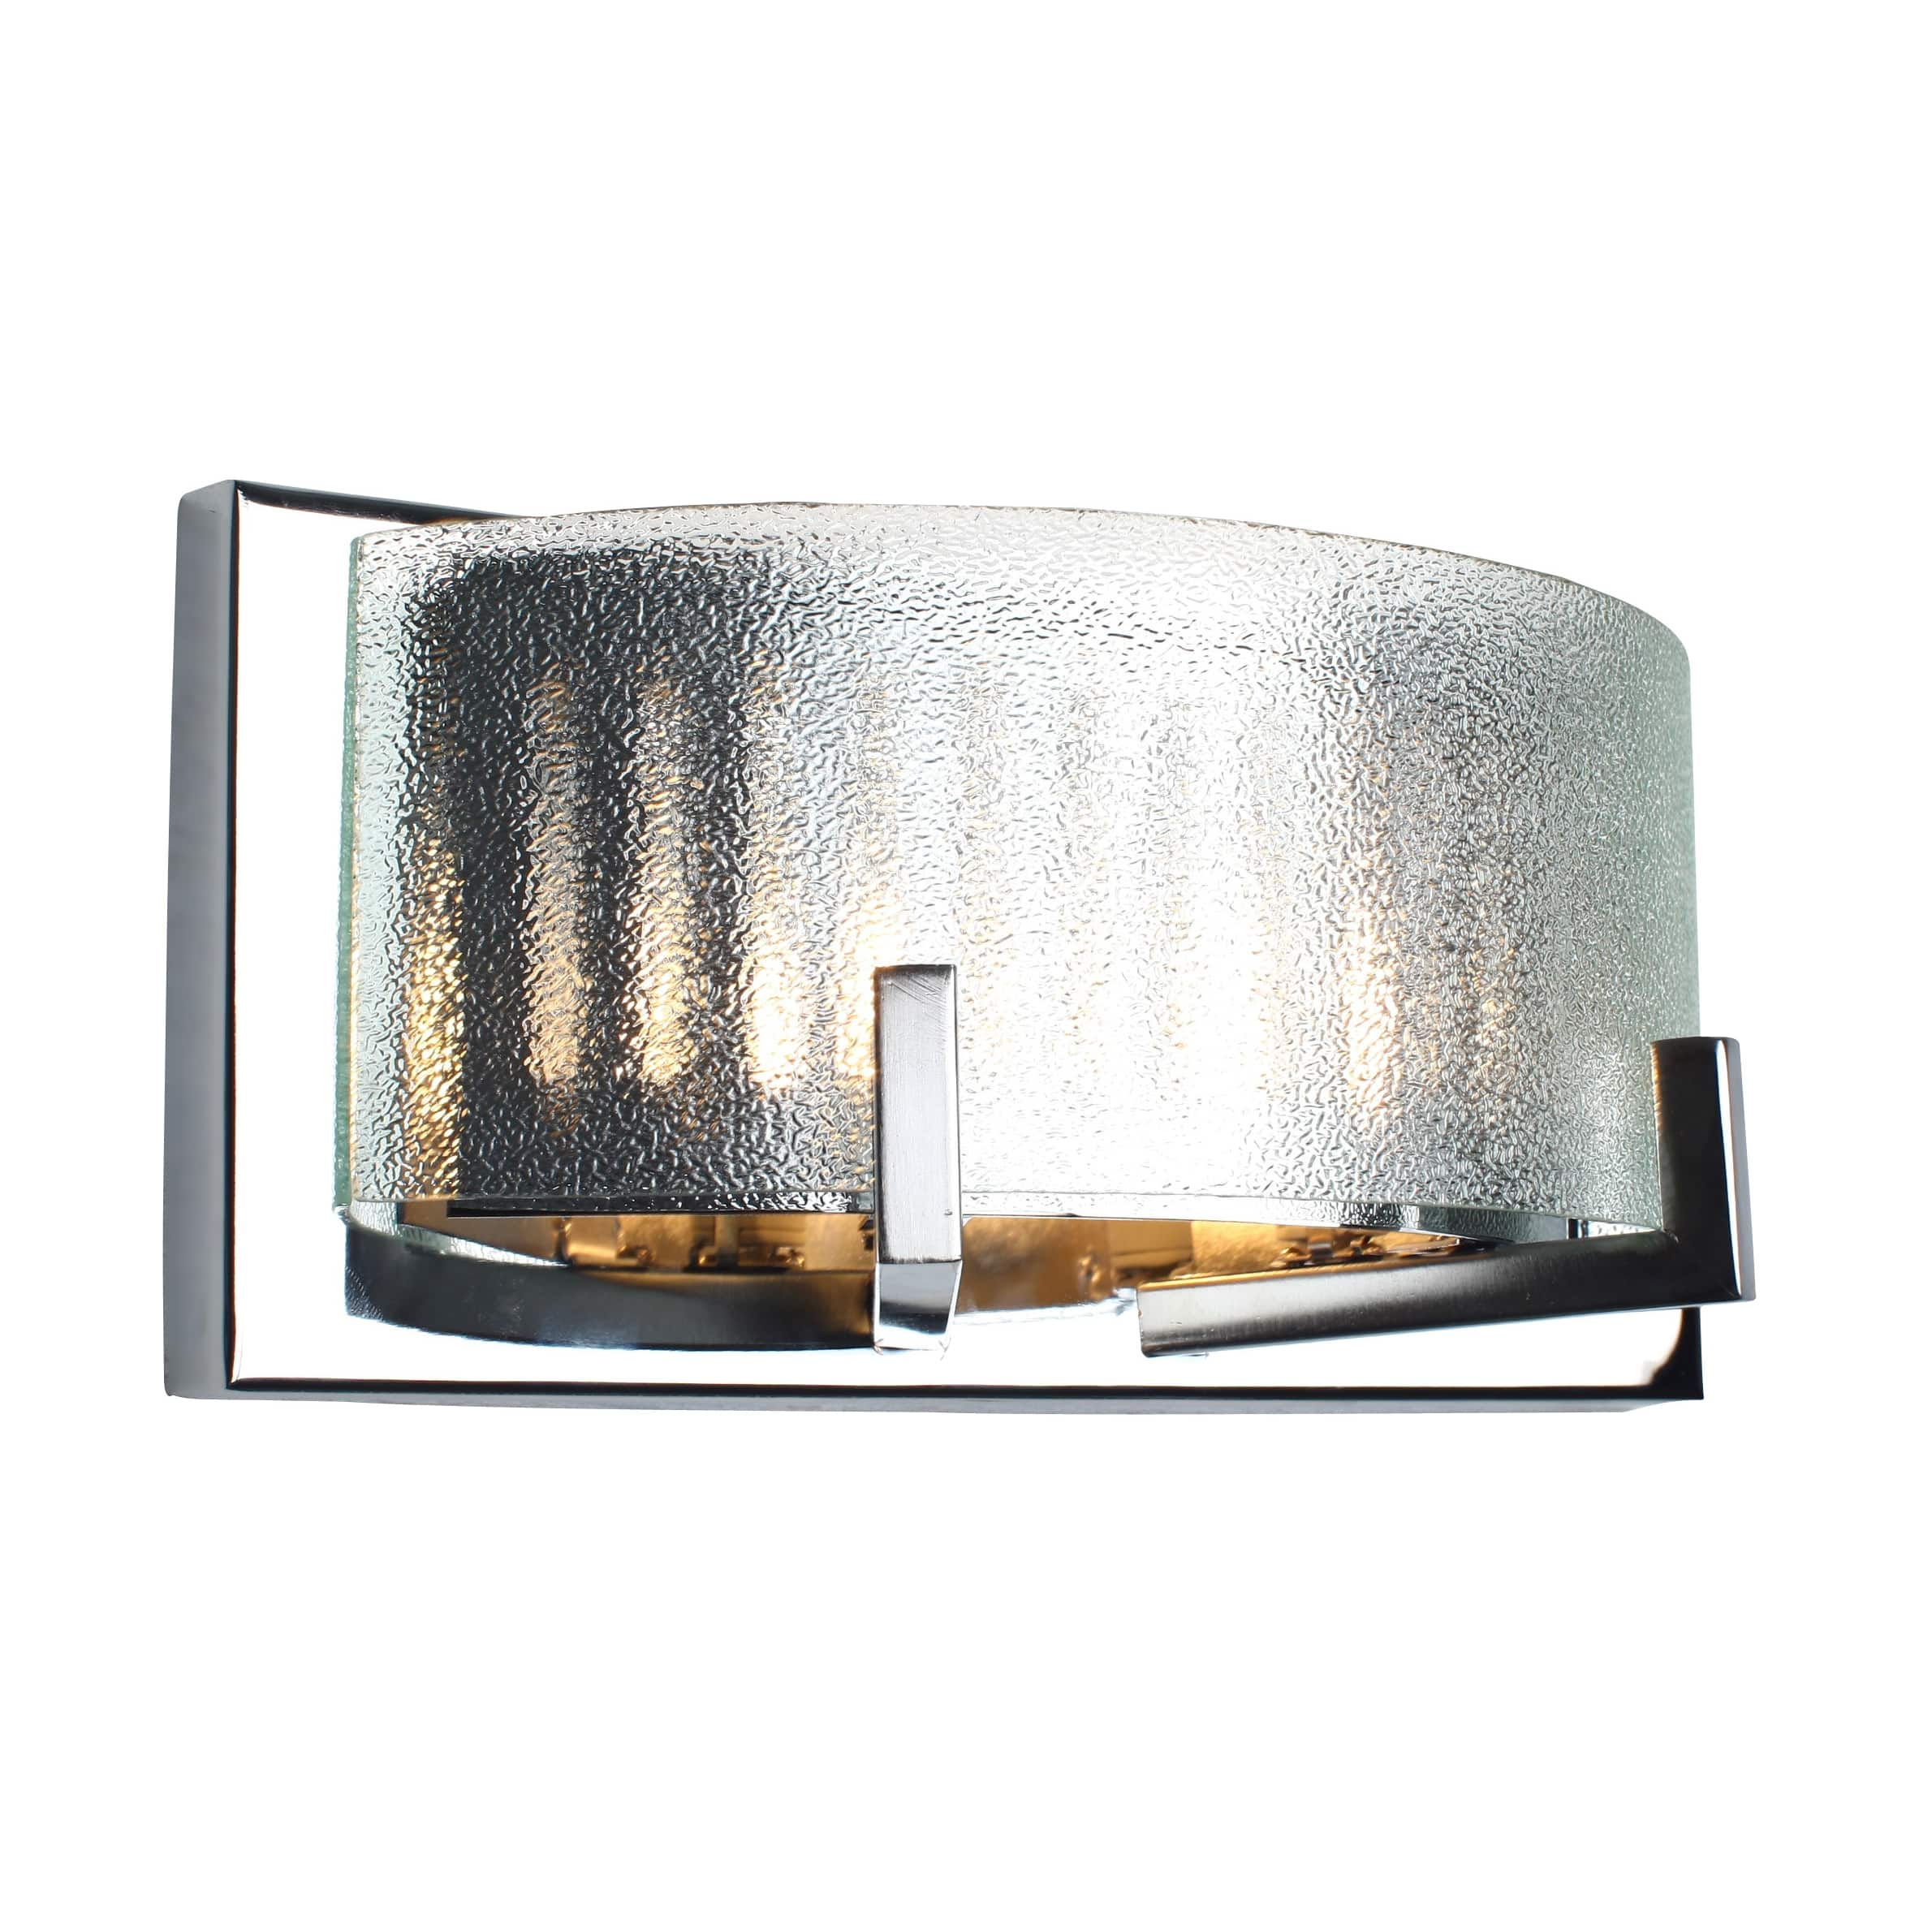 Alternating Current Firefly 2-light Chrome Vanity Fixture|https://ak1.ostkcdn.com/images/products/7233801/80/595/Alternating-Current-Firefly-2-light-Chrome-Vanity-Fixture-P14715409.jpg?impolicy=medium